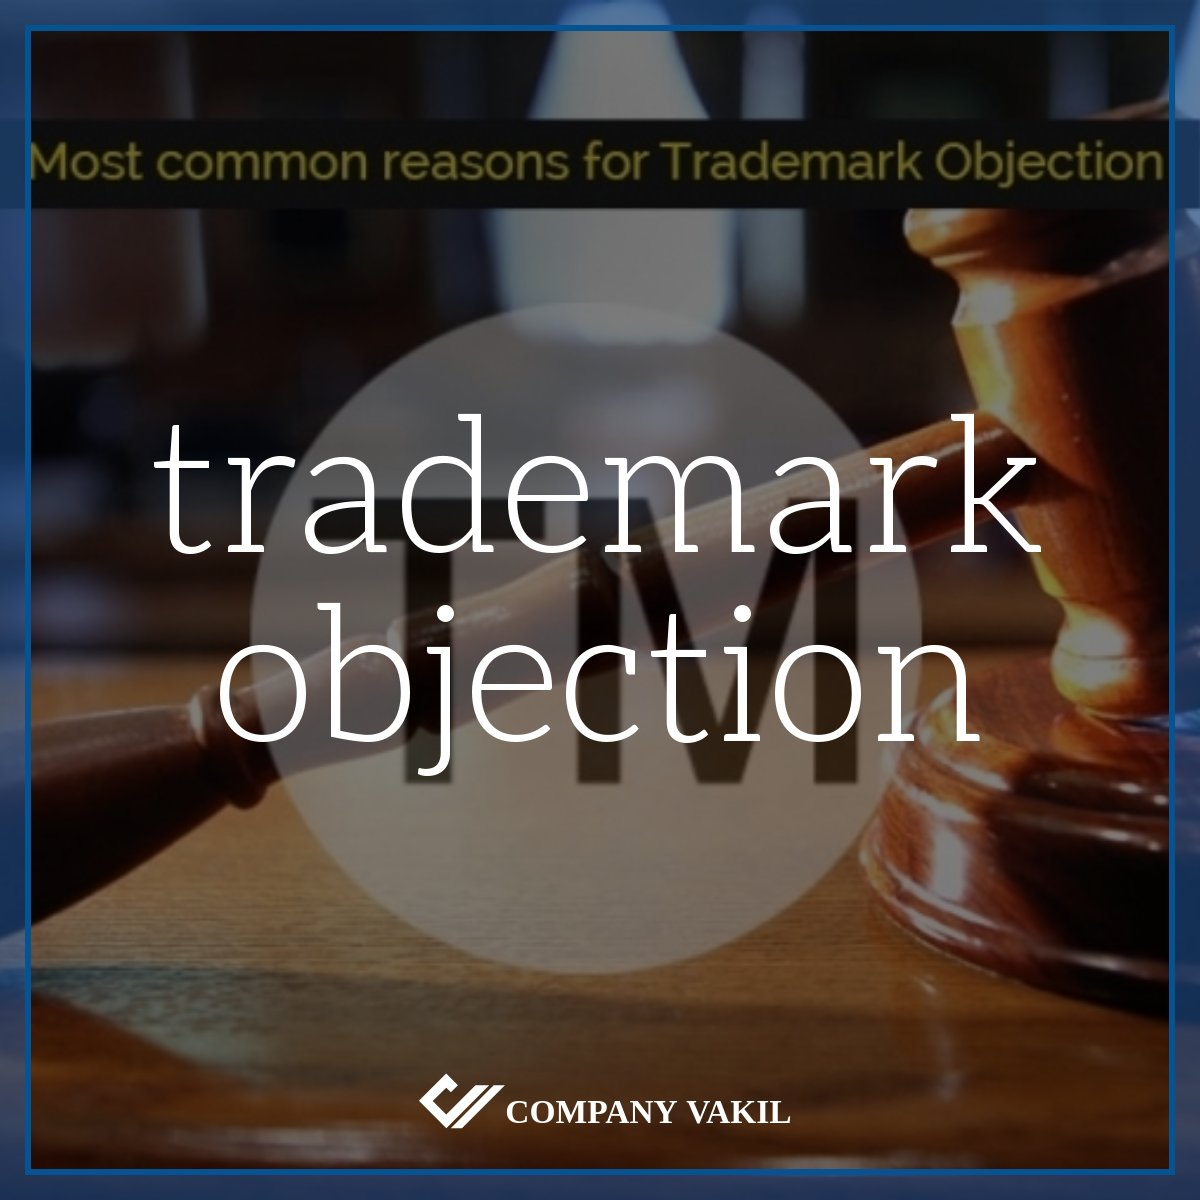 trademark objection online reply